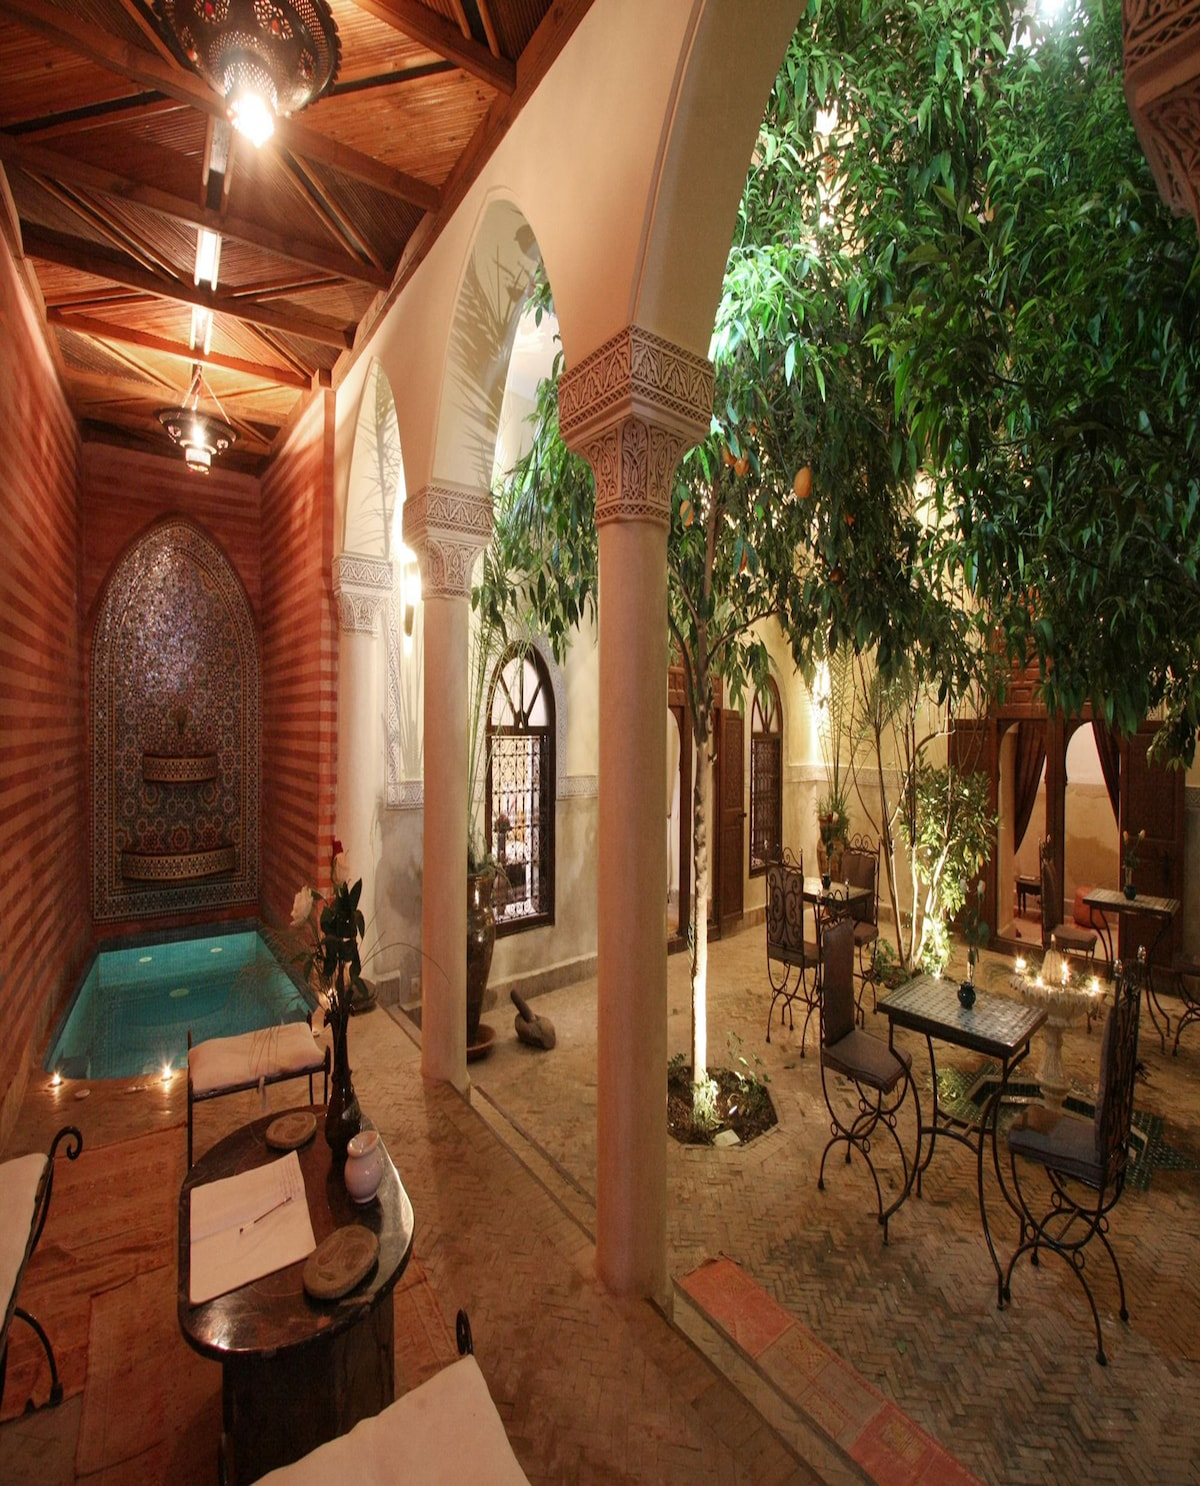 Riad Sidi Ayoub In Marrakech From Marrakesh, Morocco